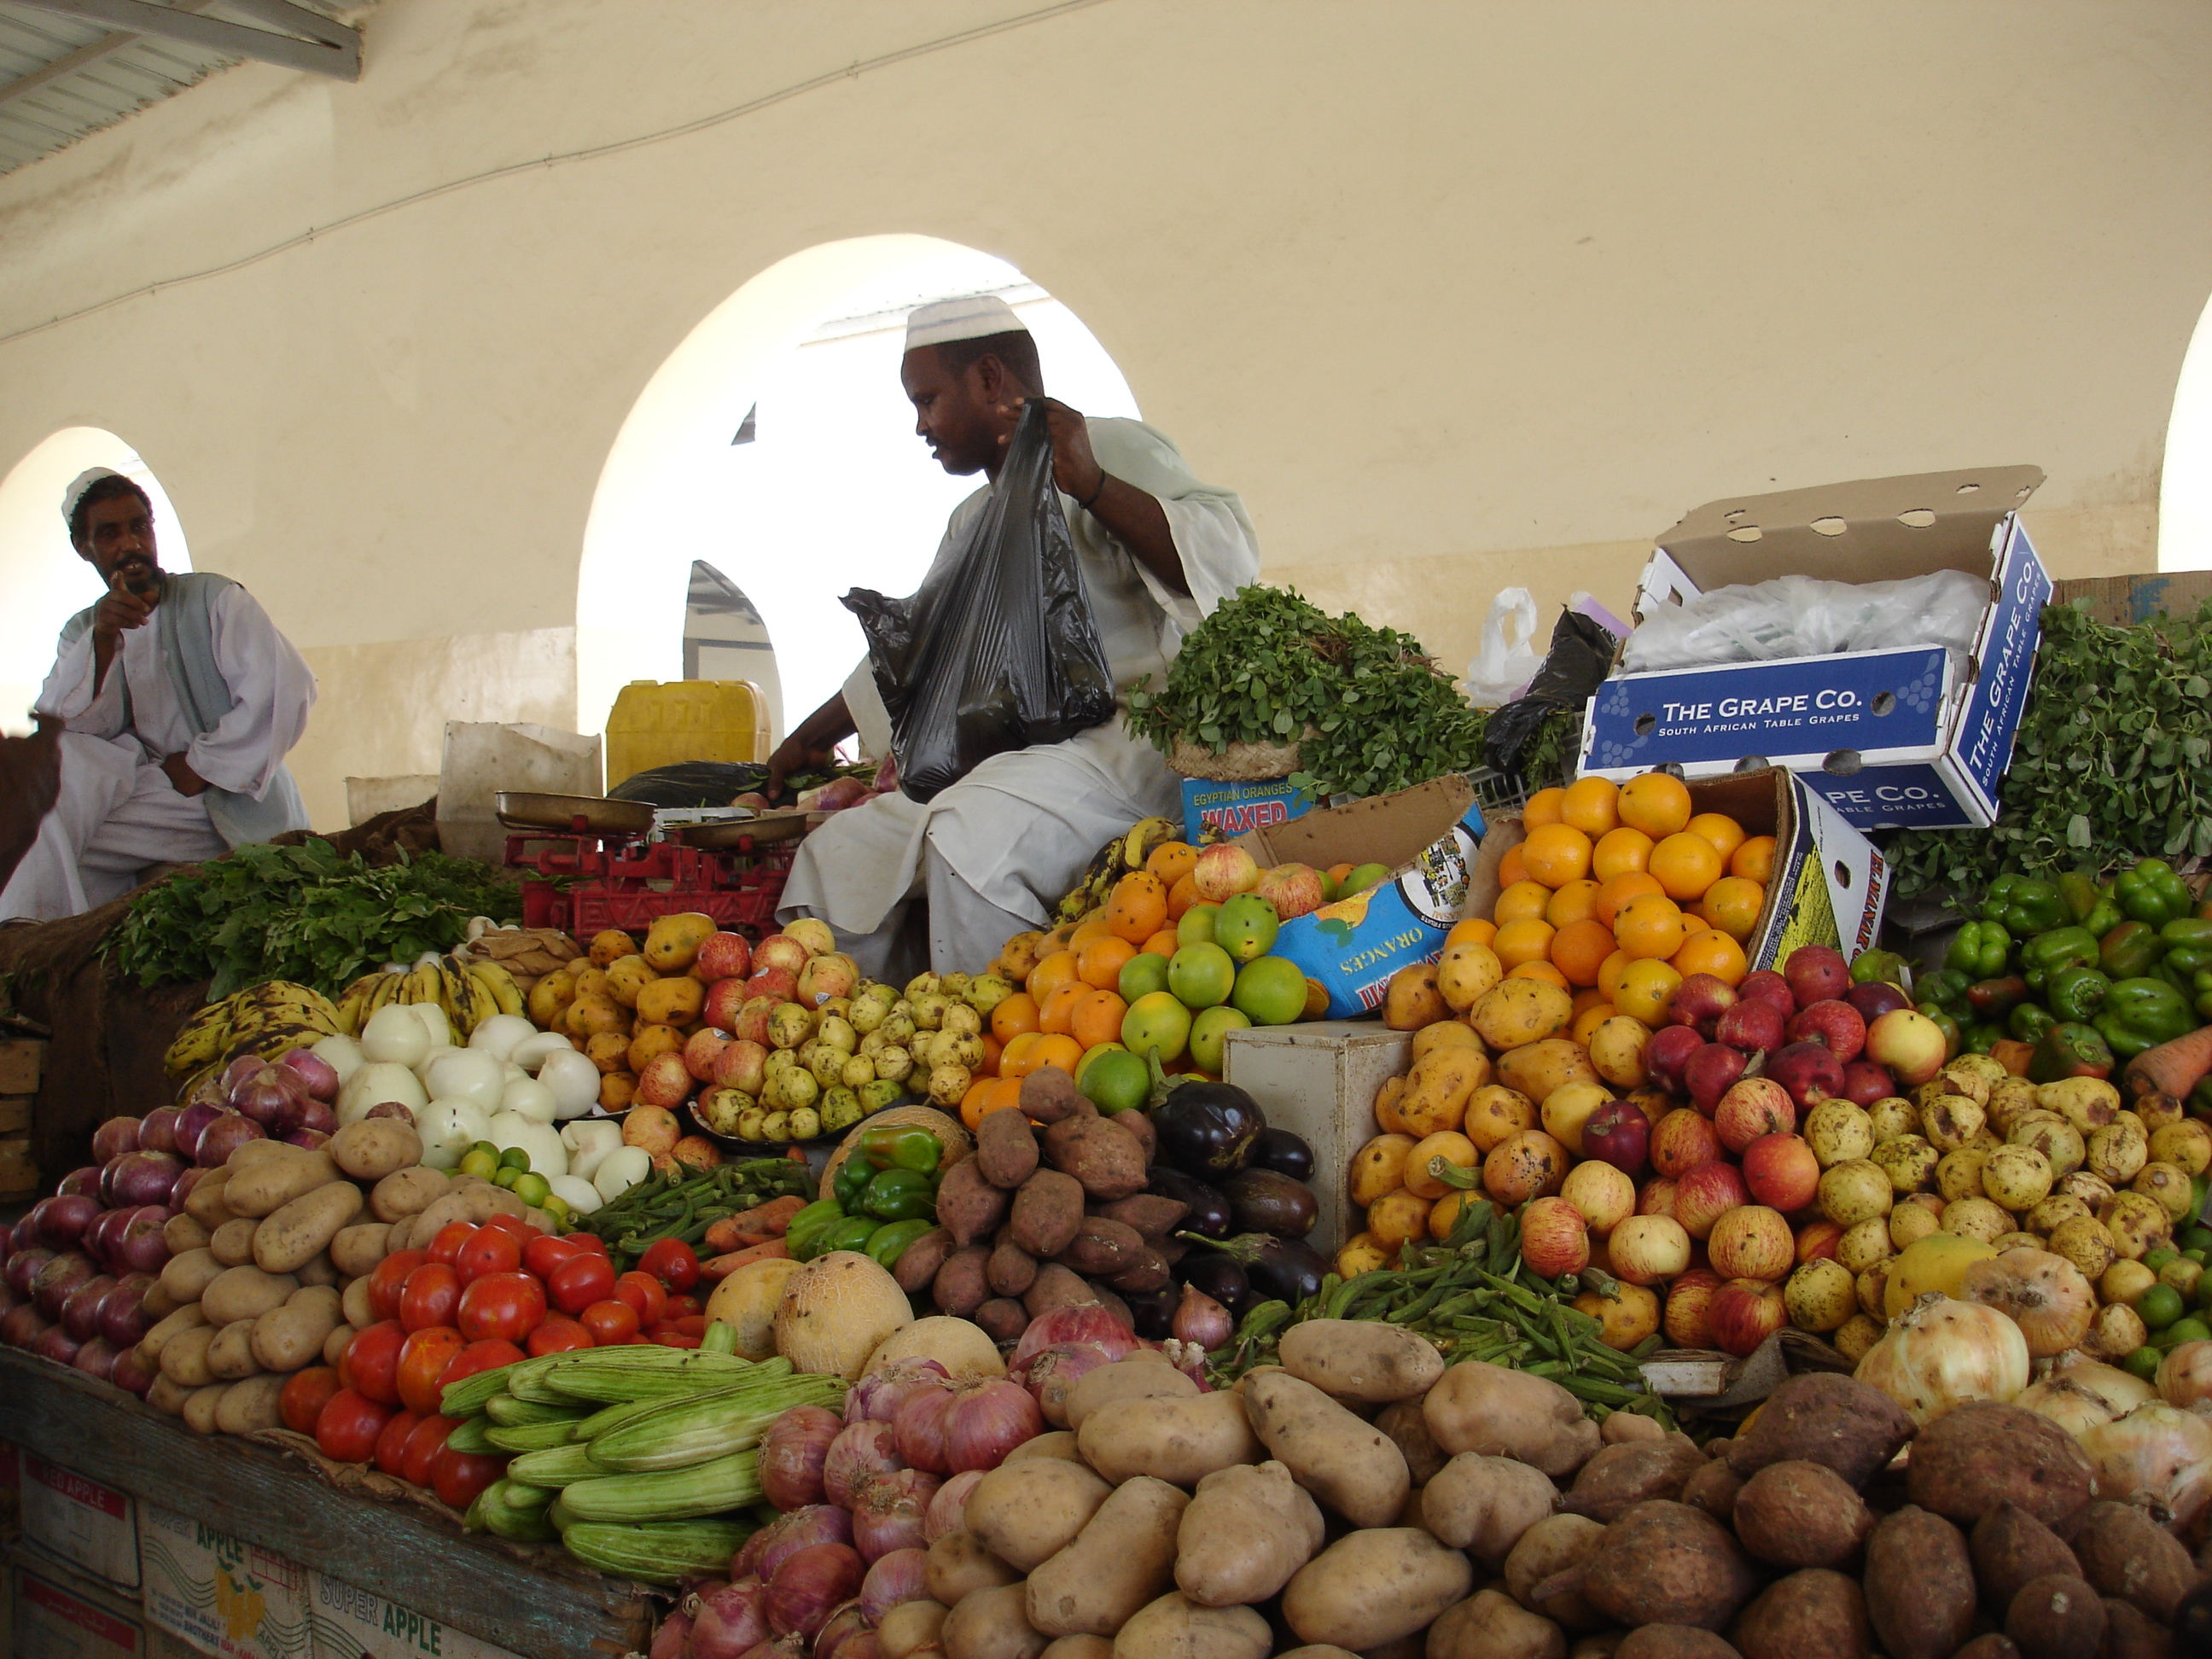 Market in Port Sudan